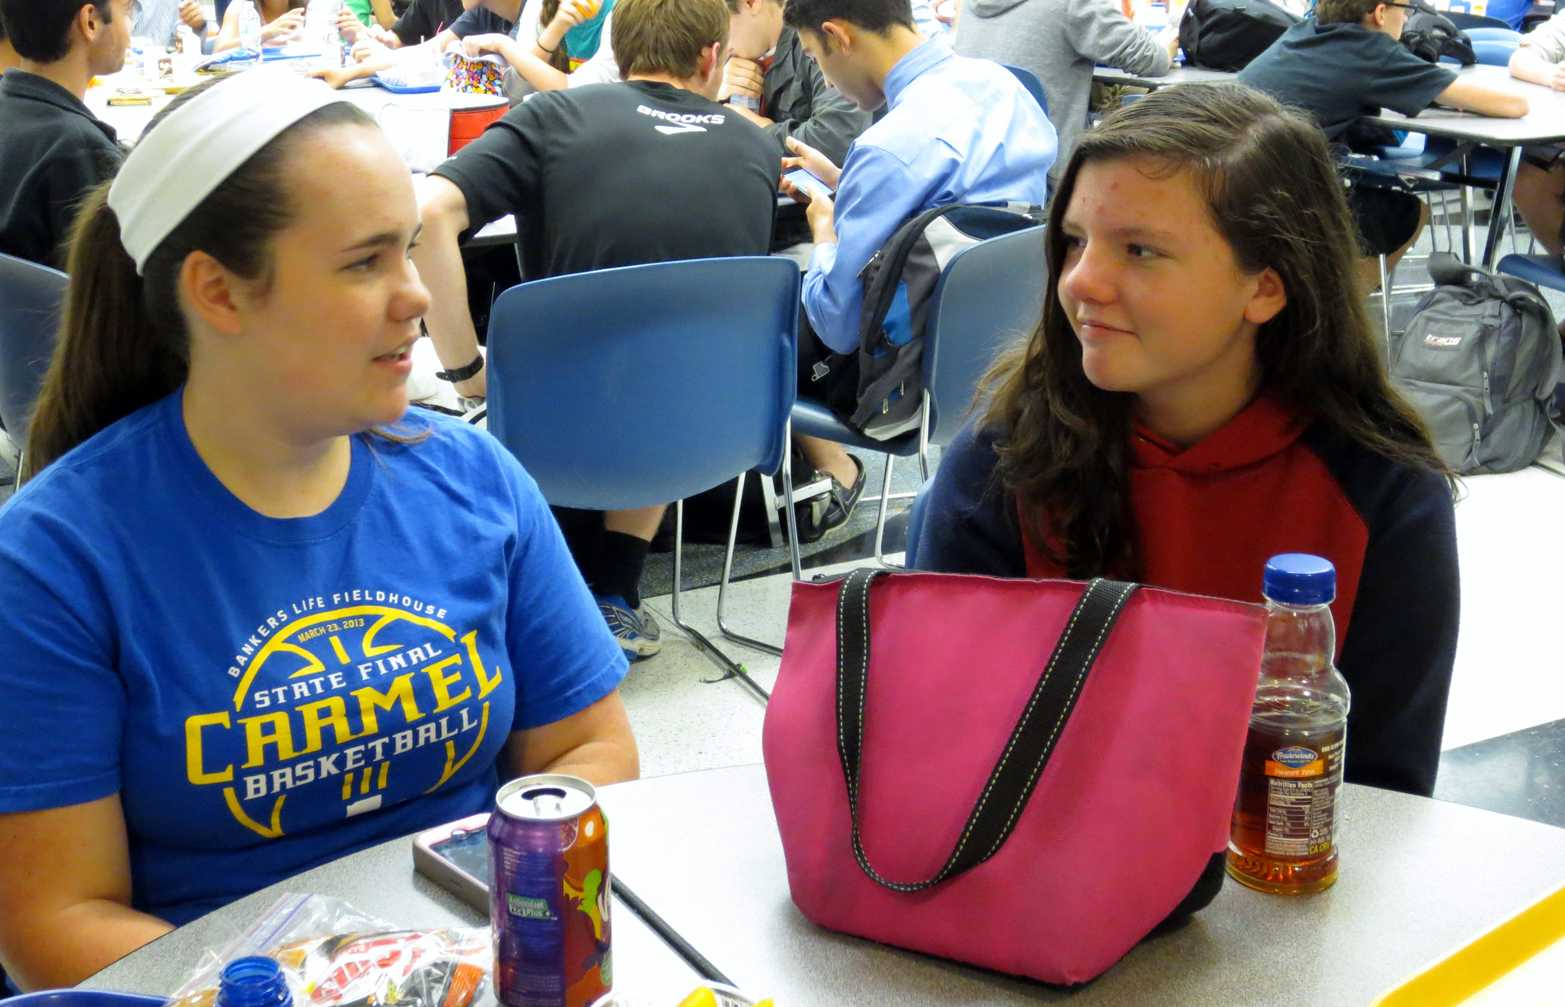 Junior Emily Cornwell (left) and Cathleen Schmalfuss (right), the German exchange student who Cornwell hosts, talk to each other during lunch. Both Cornwell and Schmalfuss hope to improve in German and English, respectively, during the exchange. SARAH LIU / PHOTO